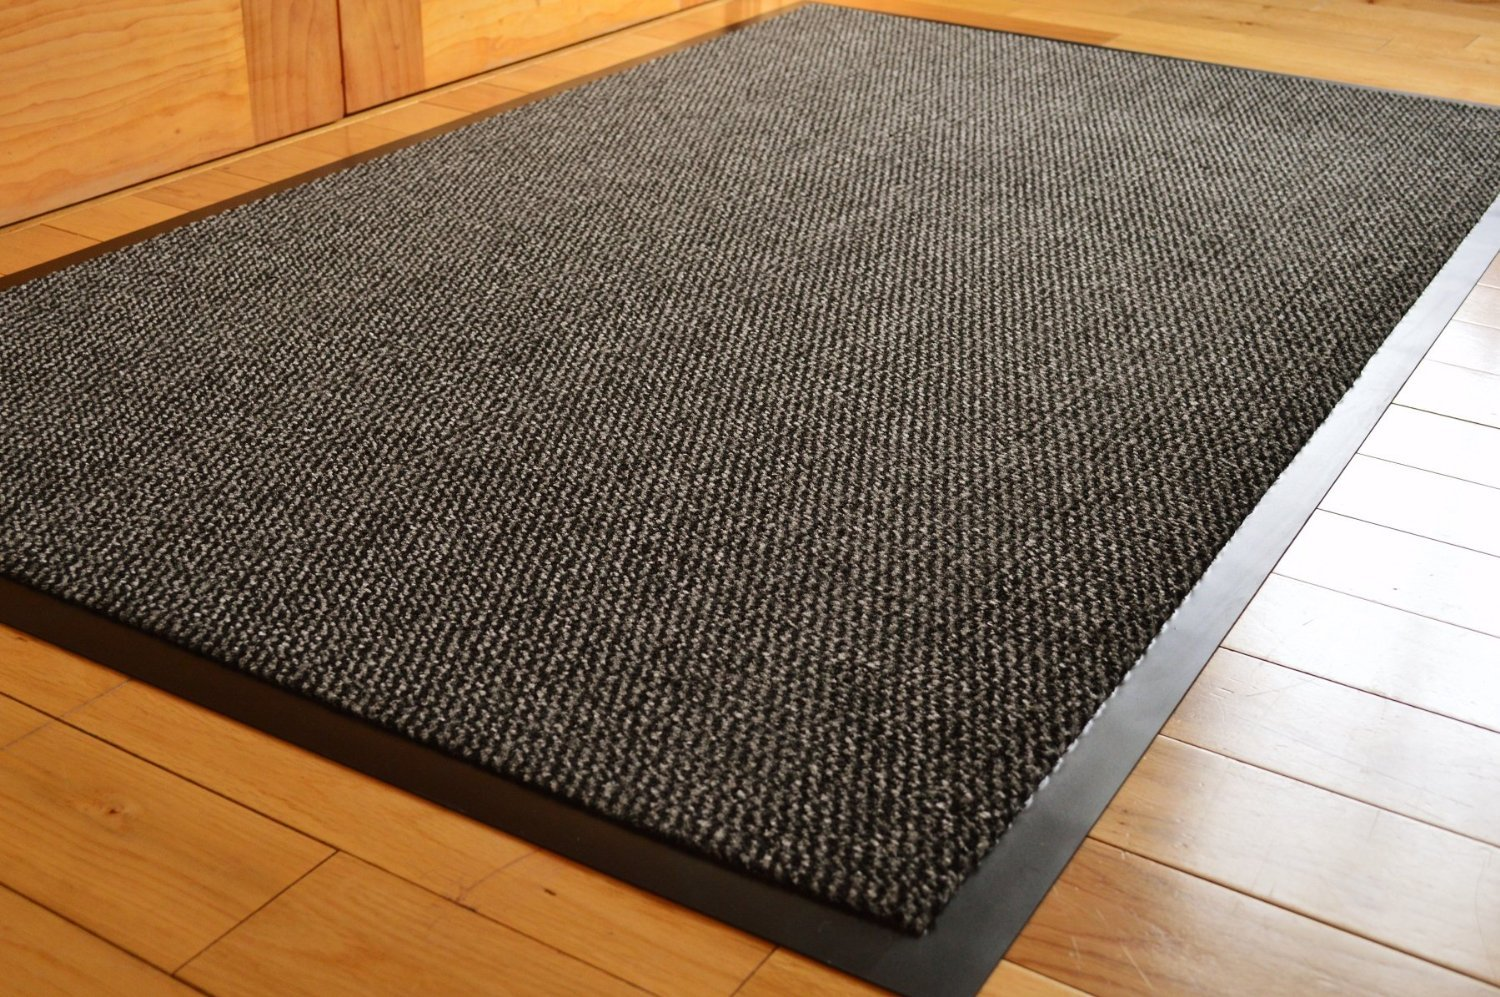 BARRIER MAT LARGE GREY /BLACK DOOR MAT RUBBER BACKED MEDIUM RUNNER ...